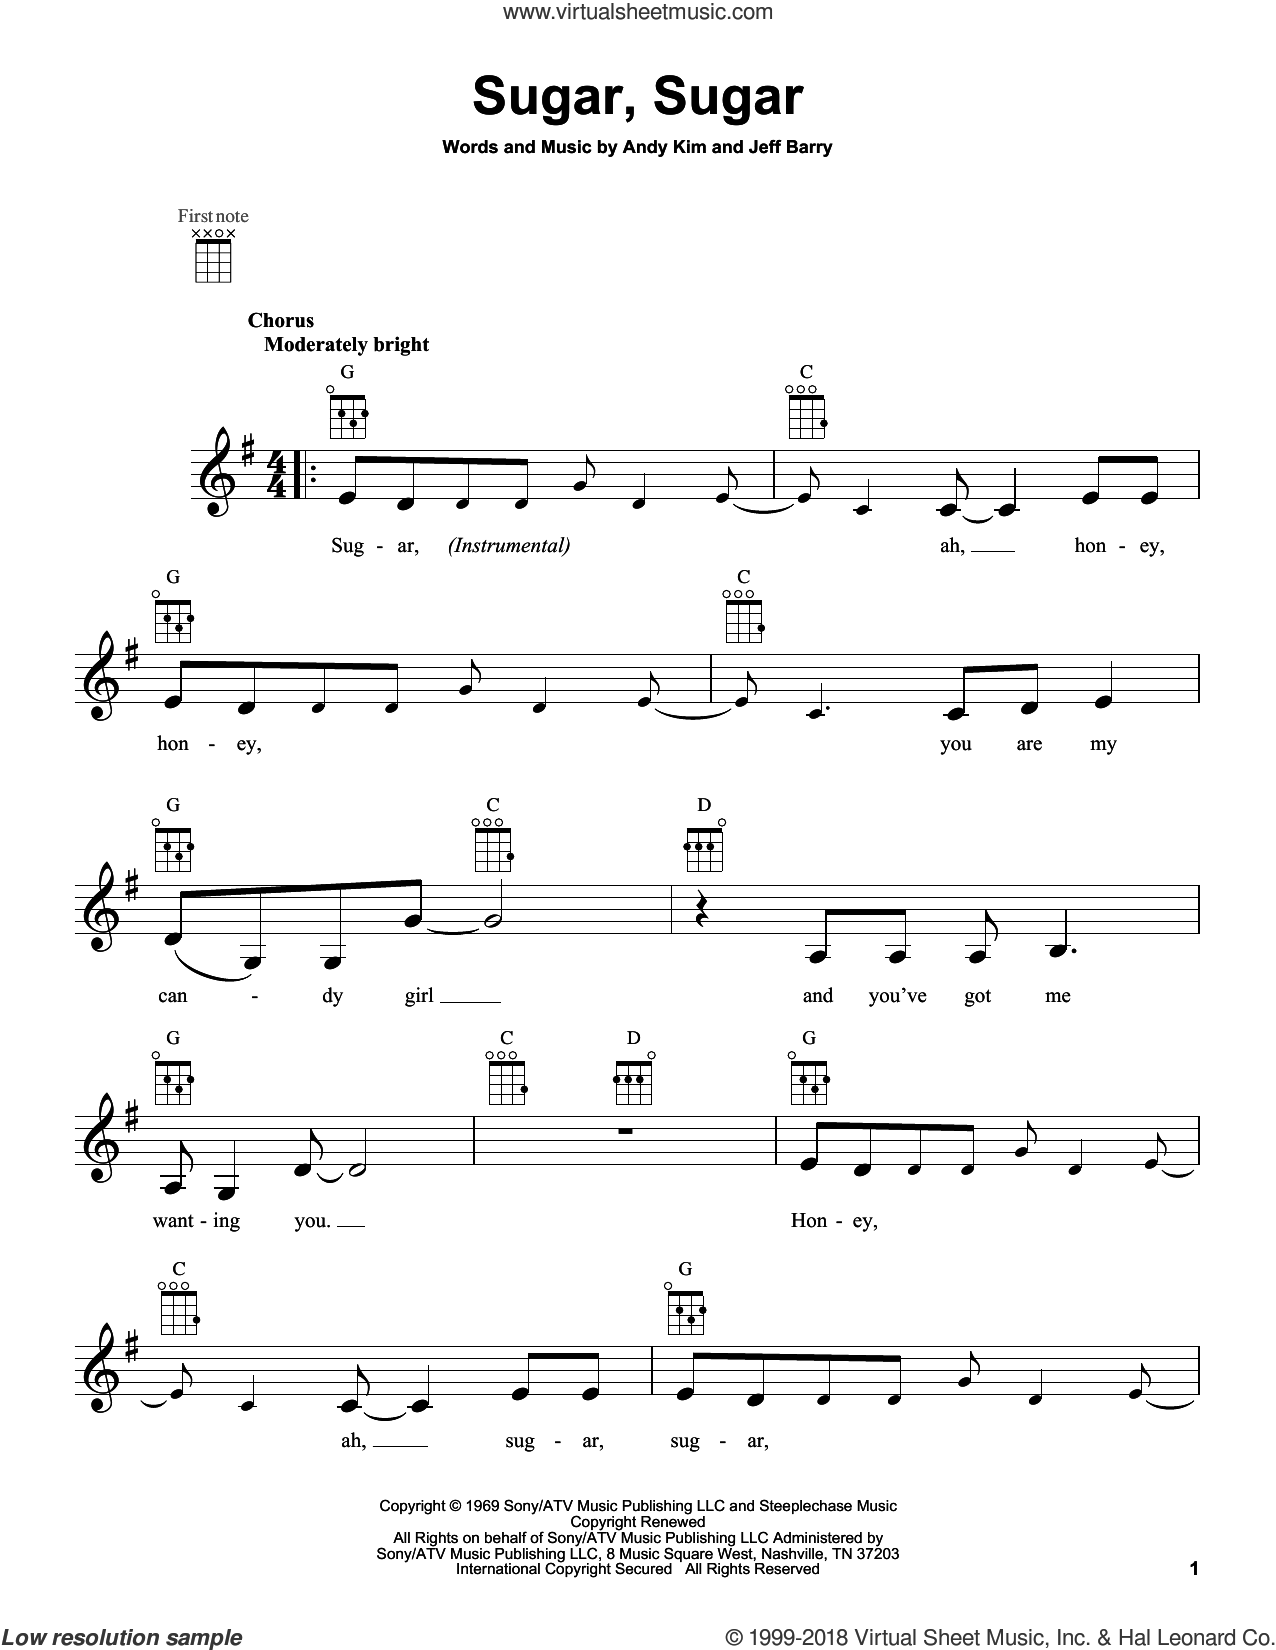 Sugar, Sugar sheet music for ukulele by The Archies